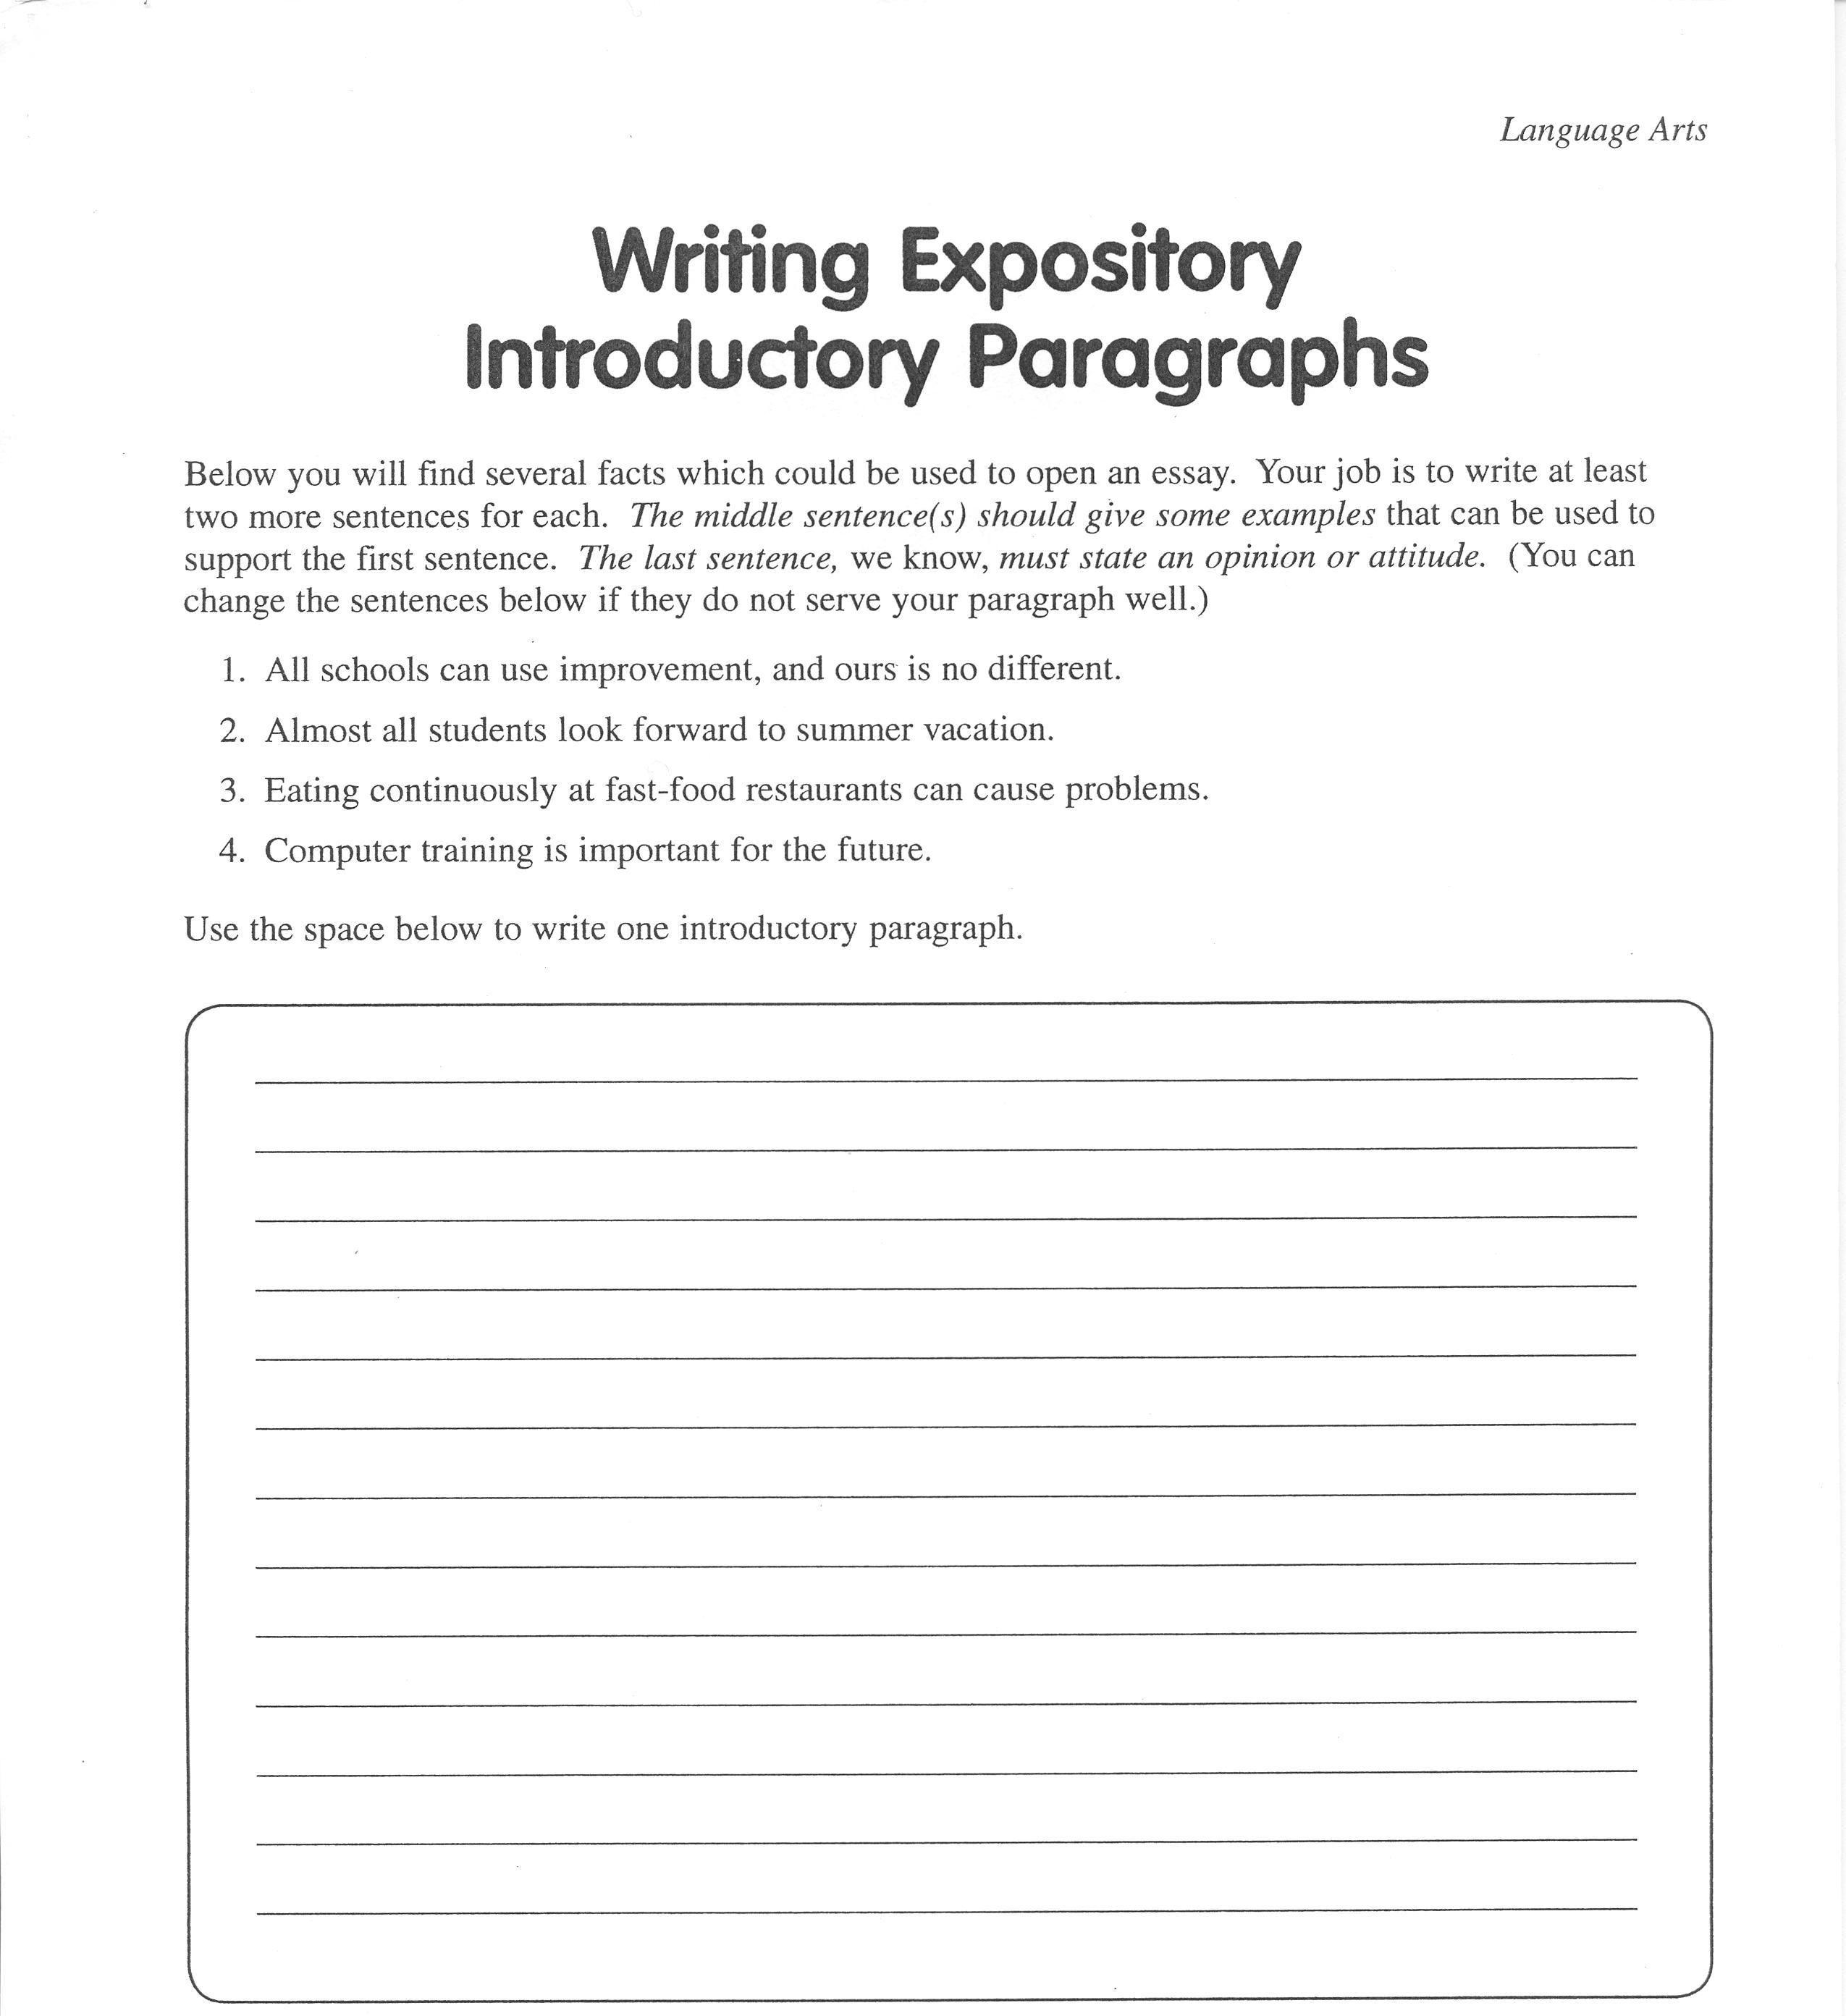 016 Expository Essays High School Writing20expository20introductory20paragraphs Staggering Essay Examples Theme Full